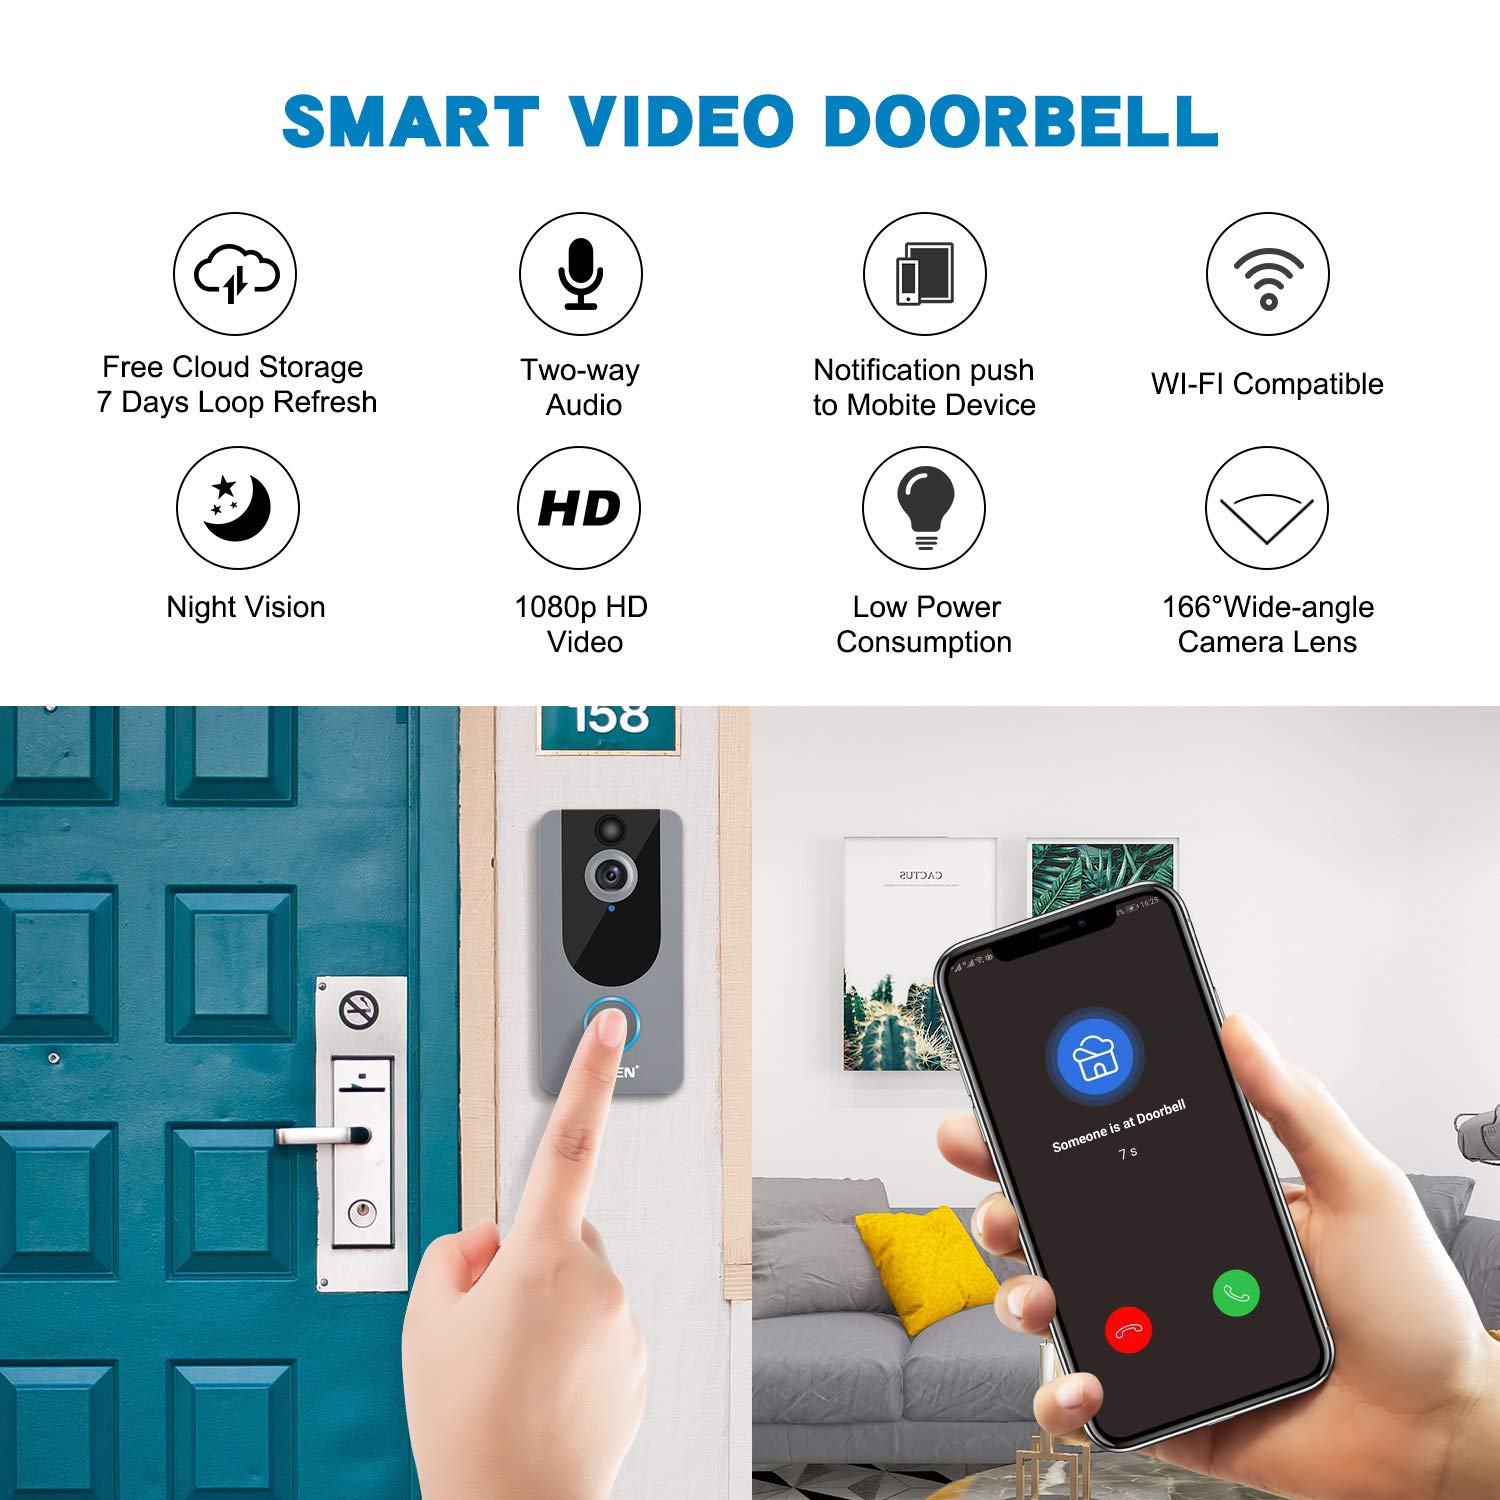 EKEN Smart Wireless WiFi Video Doorbell 1080p Cloud Storage Security Camera with PIR Motion Detection Night Vision Two-Way Talk and Real-time Video Silver